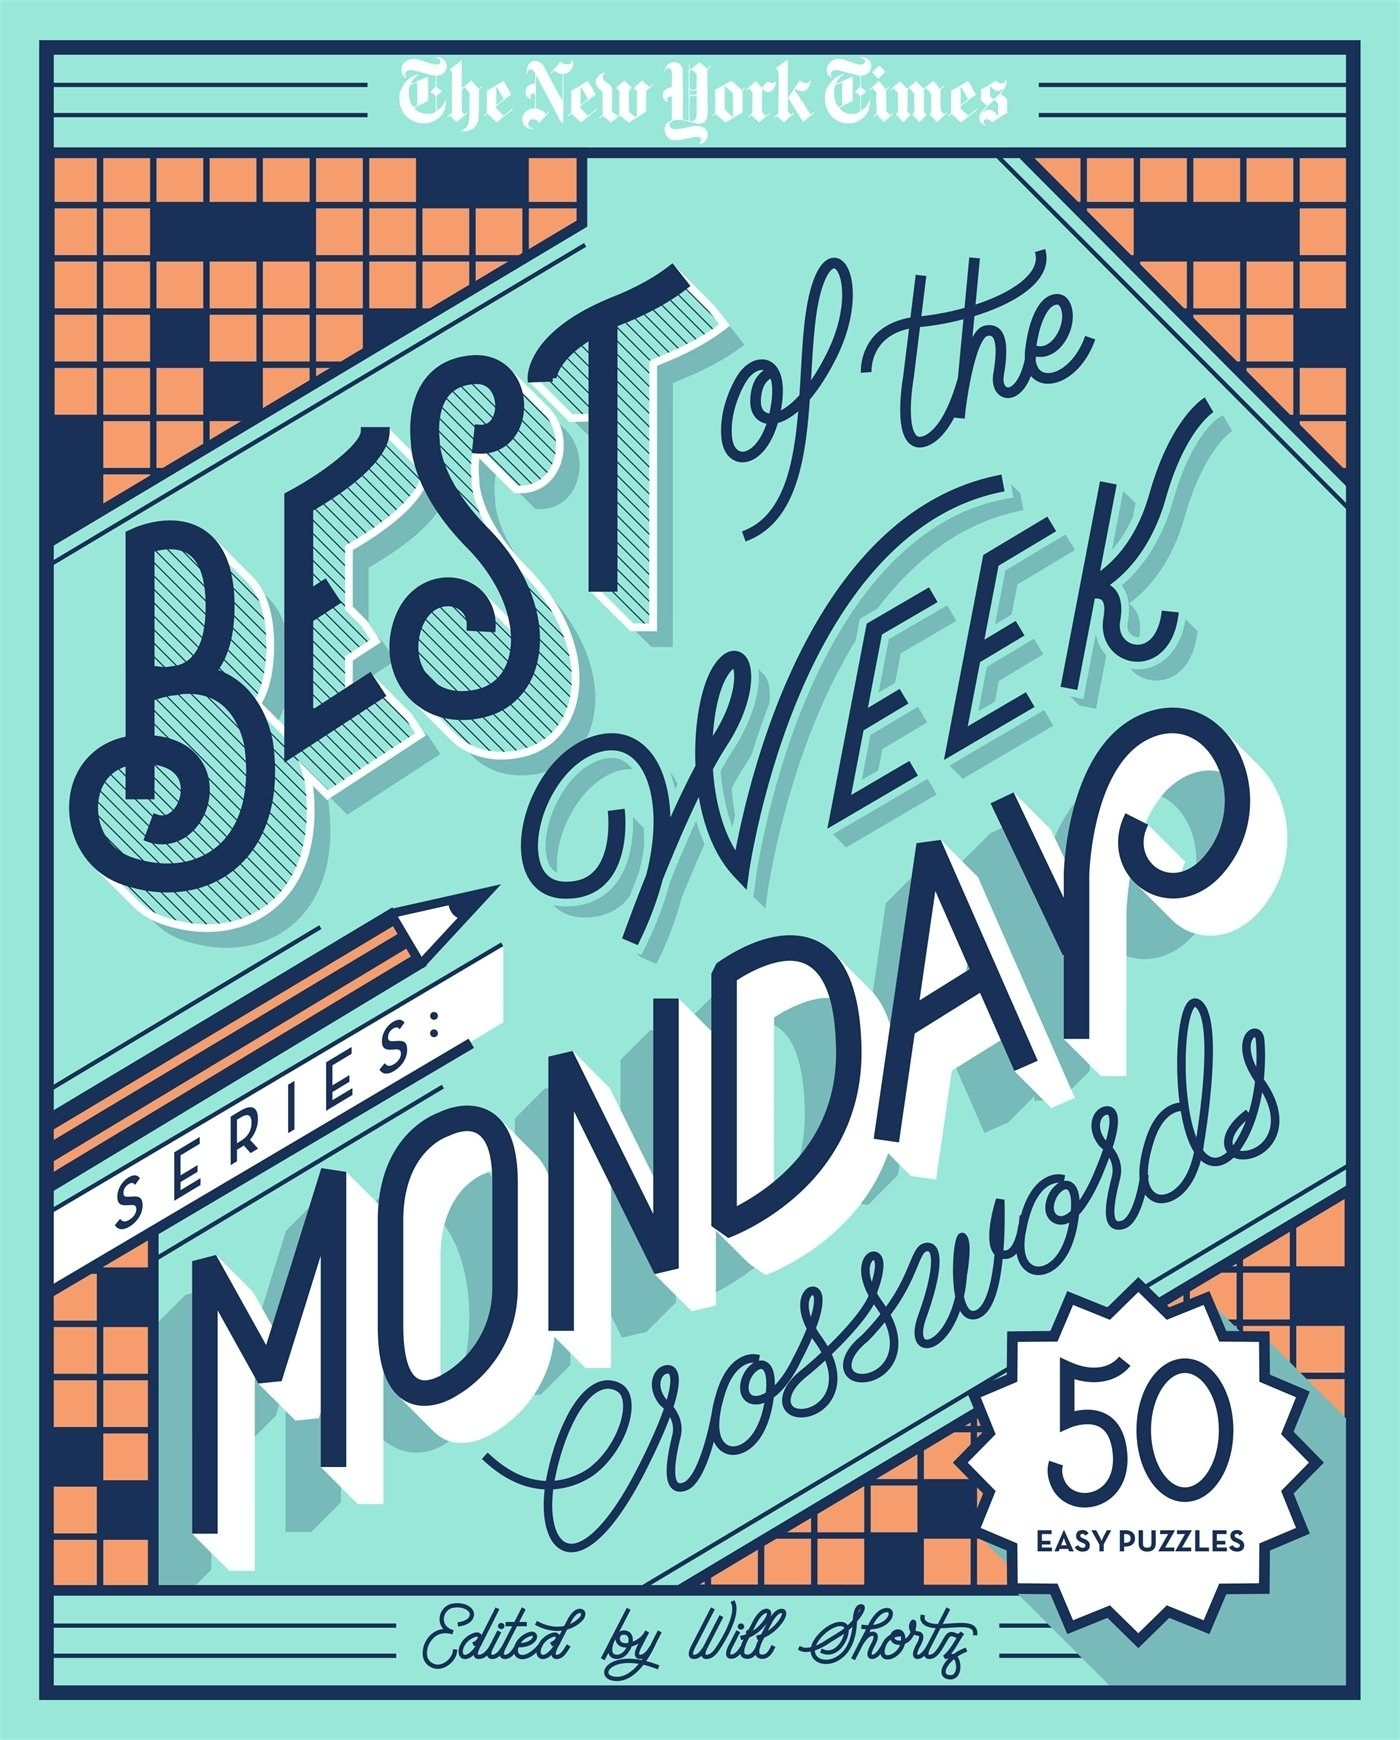 best of the week crossword book Monday edition with 50 puzzles edited by Will Shortz